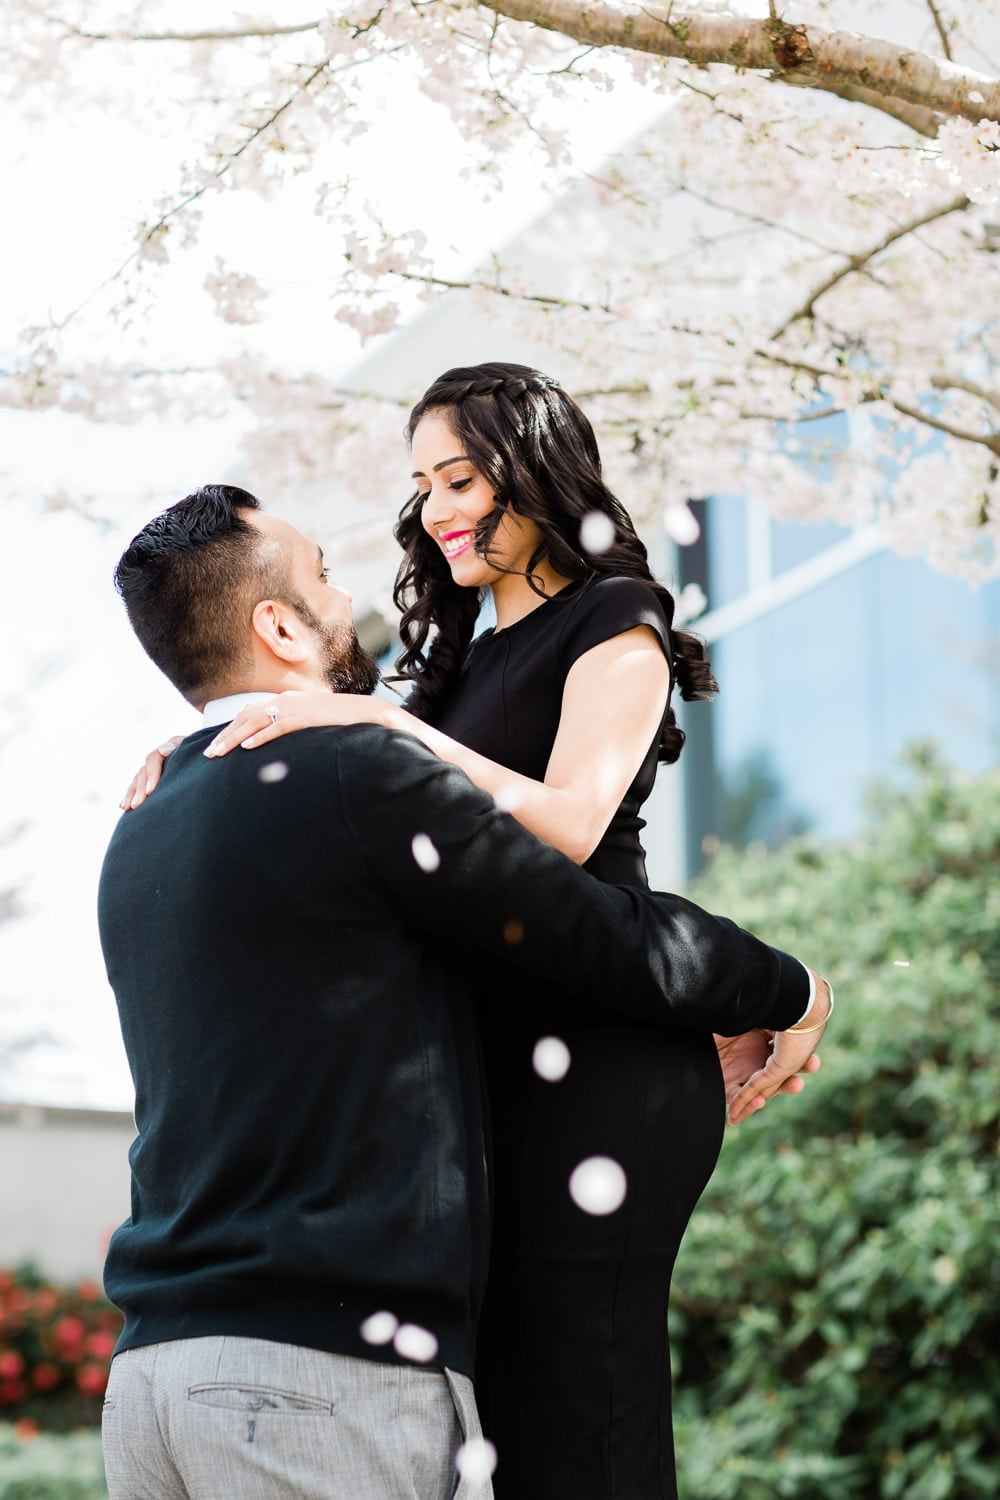 Engagement photo with cherry blossoms | Vancouver wedding photographer